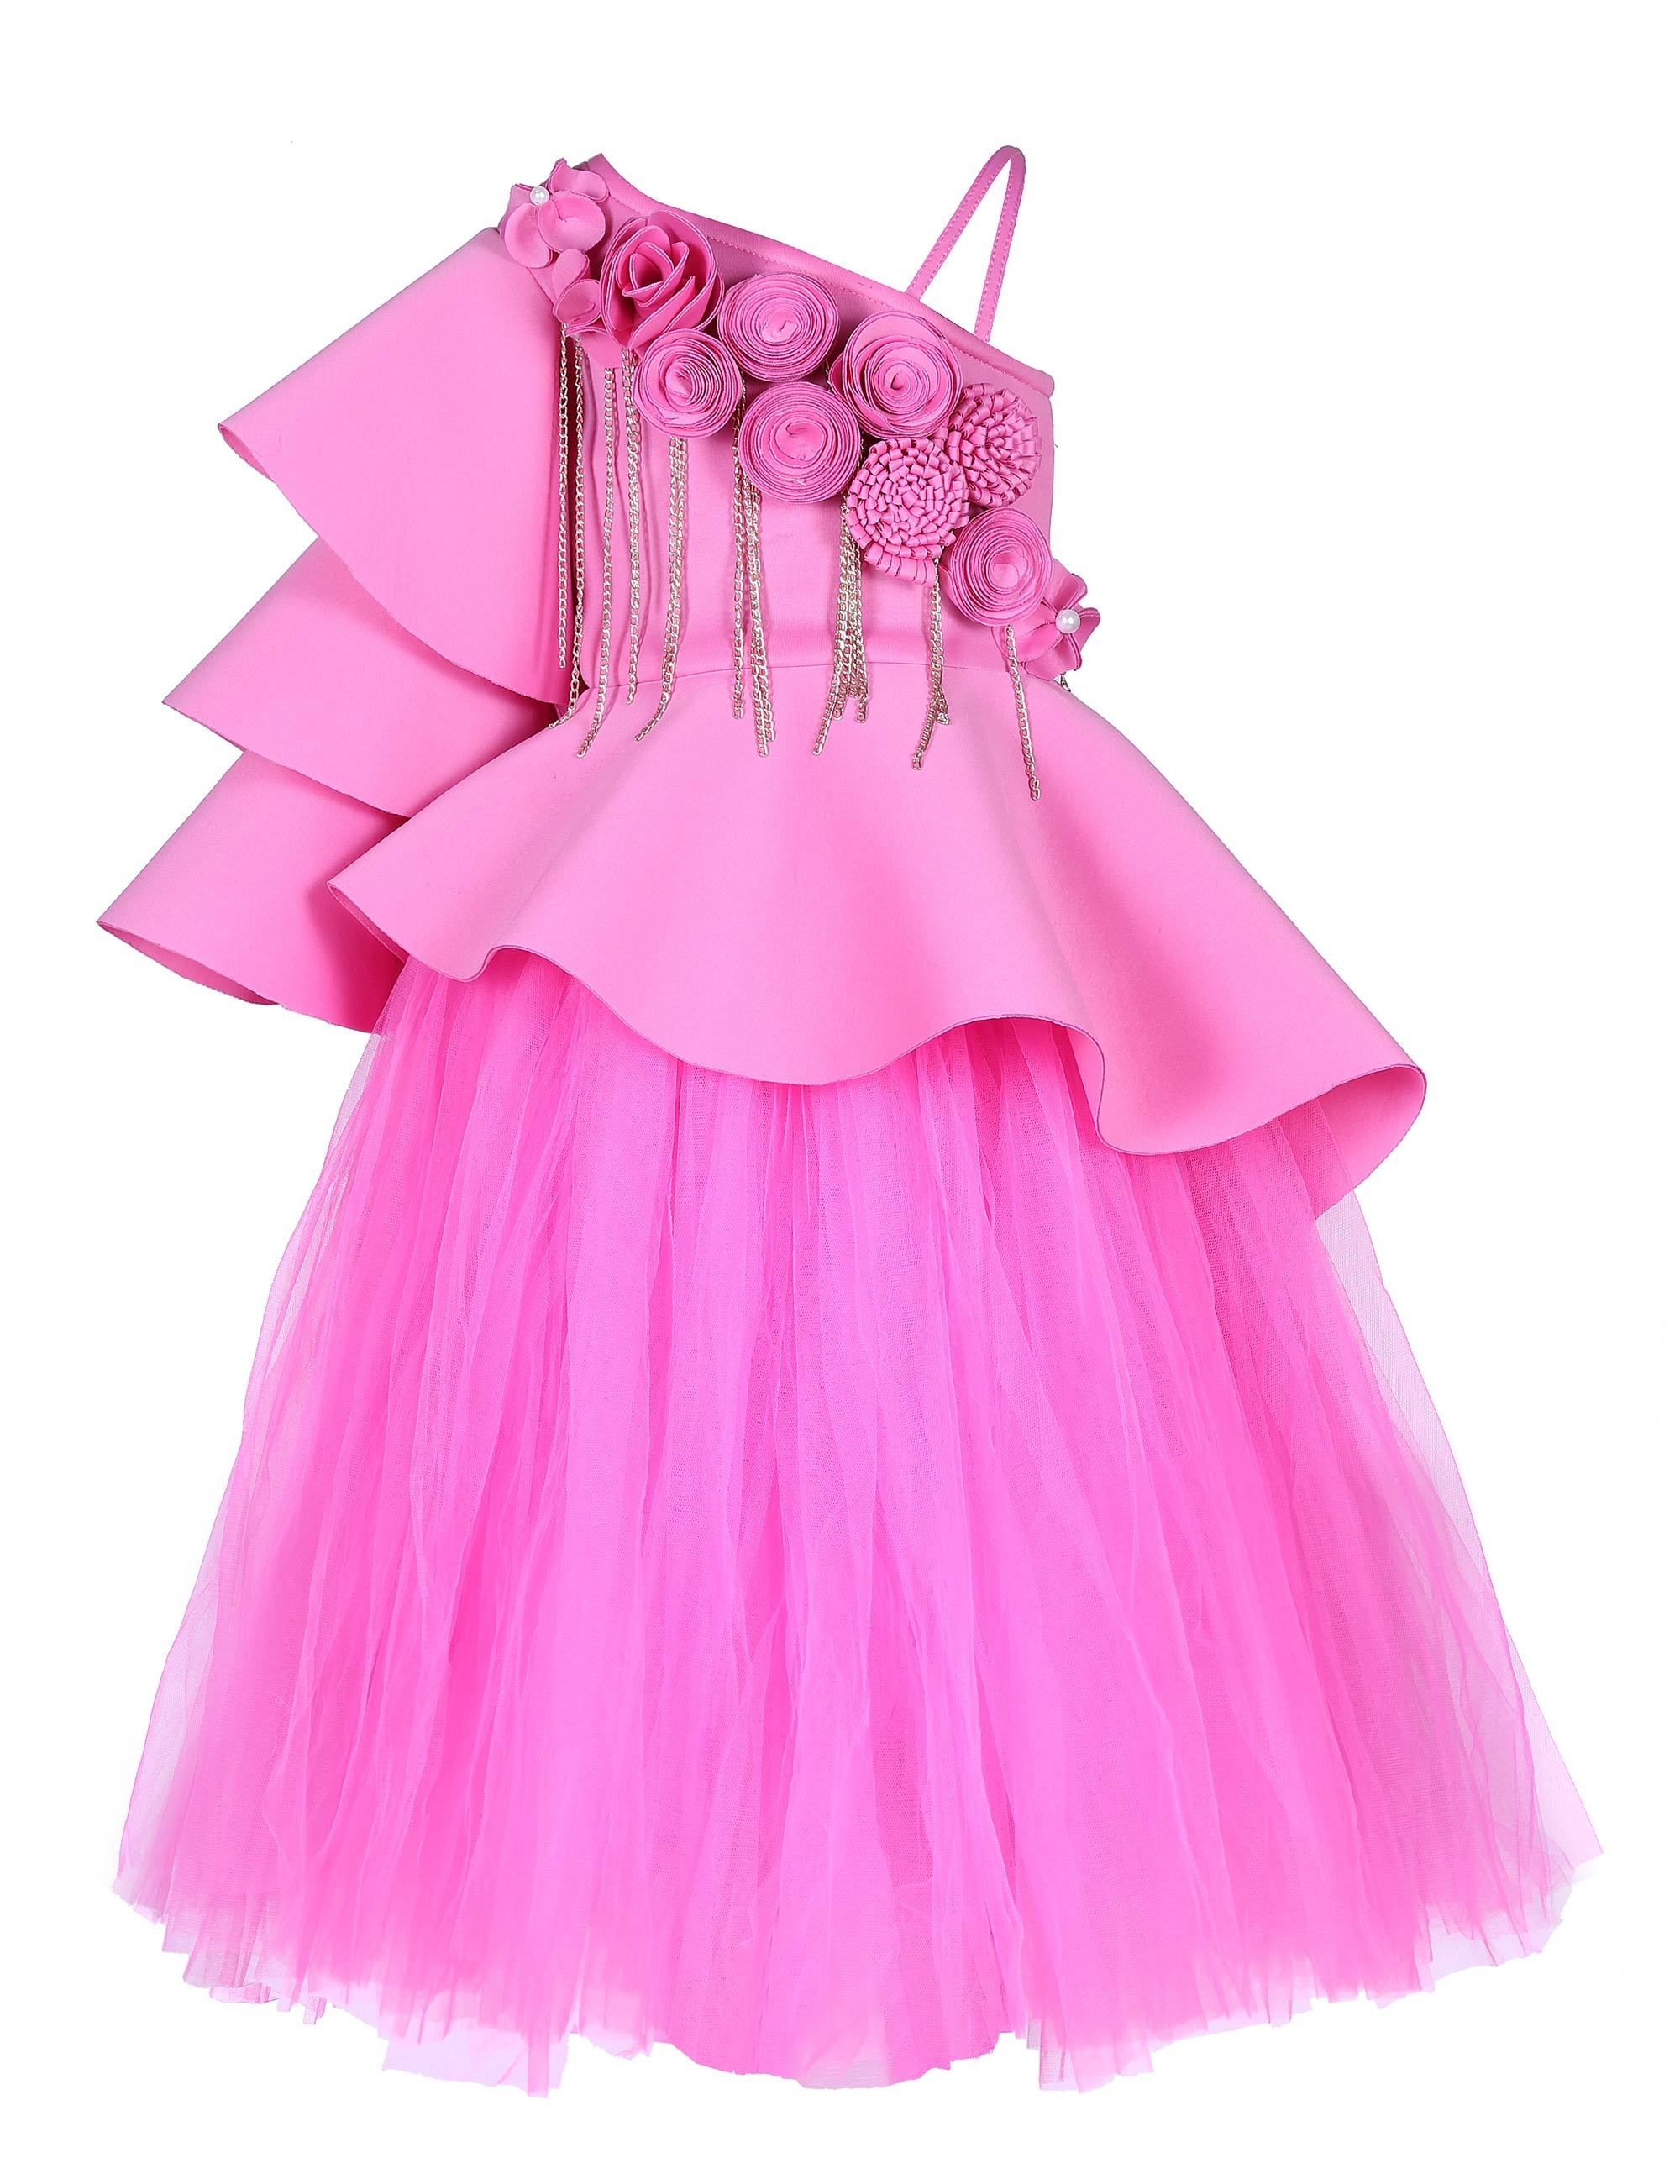 Pink Triple Layered Corset and Tutu Skirt Gown for Girls